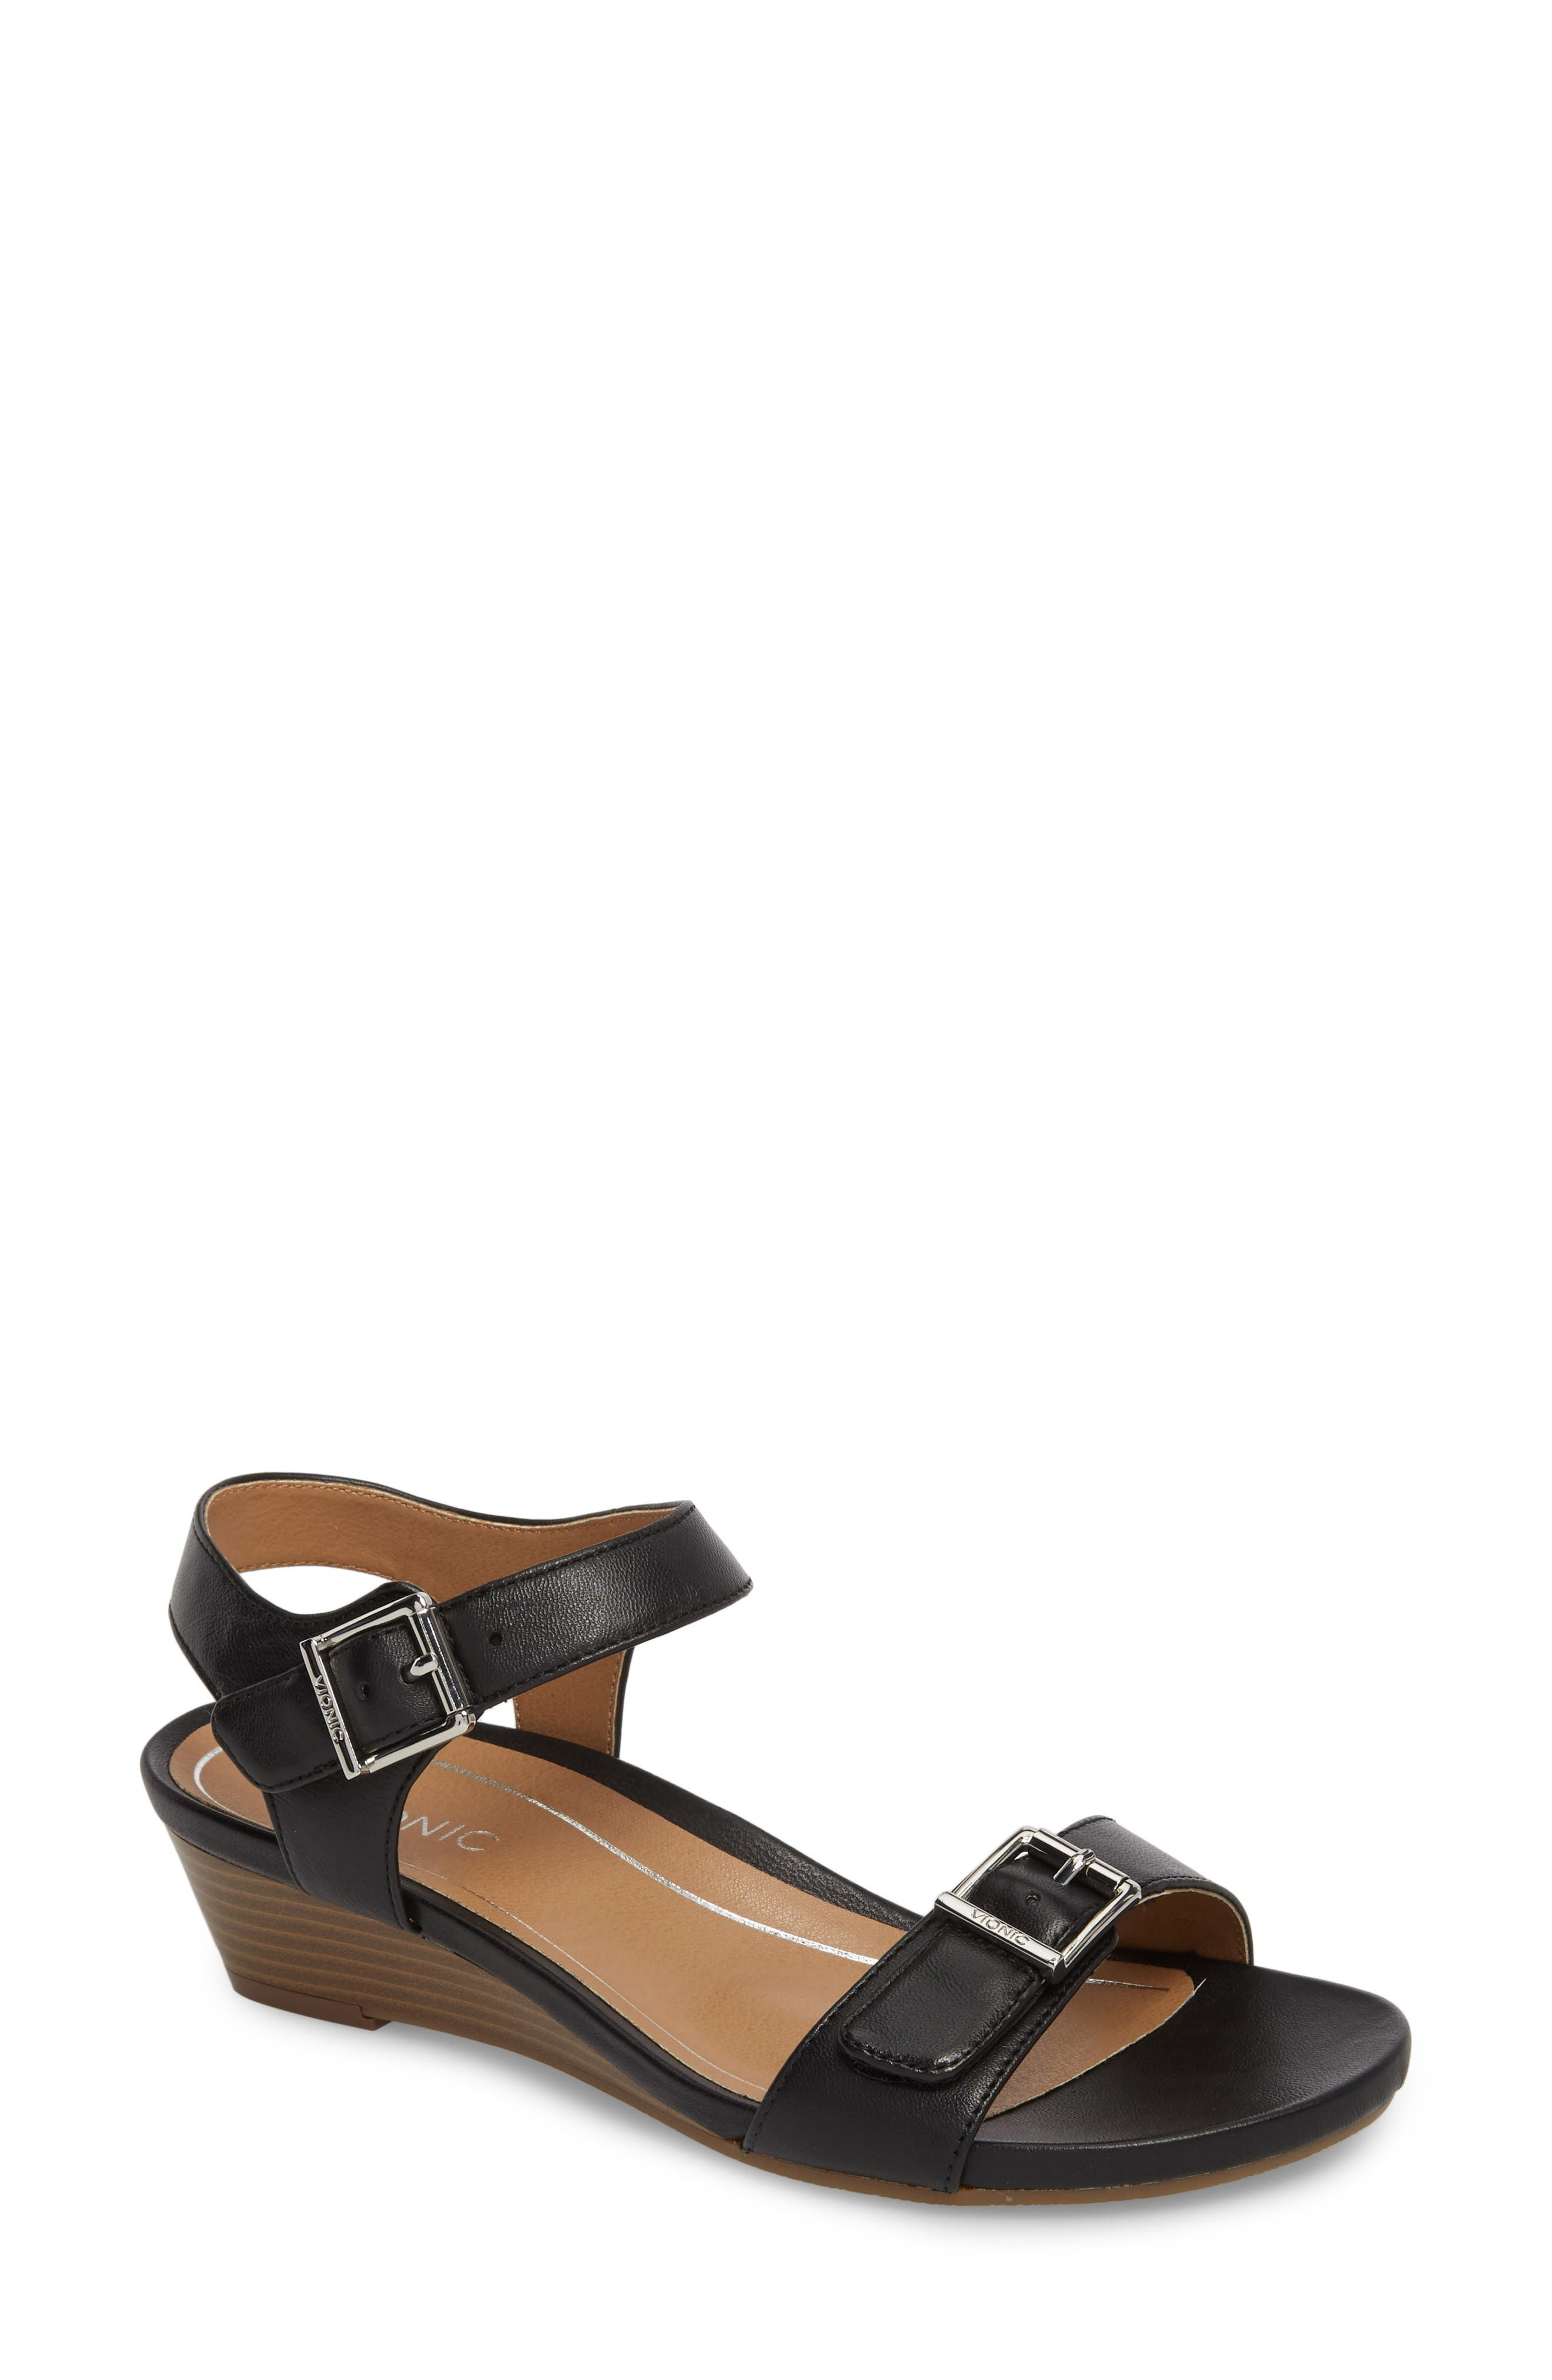 Frances Wedge Sandal,                         Main,                         color, 001